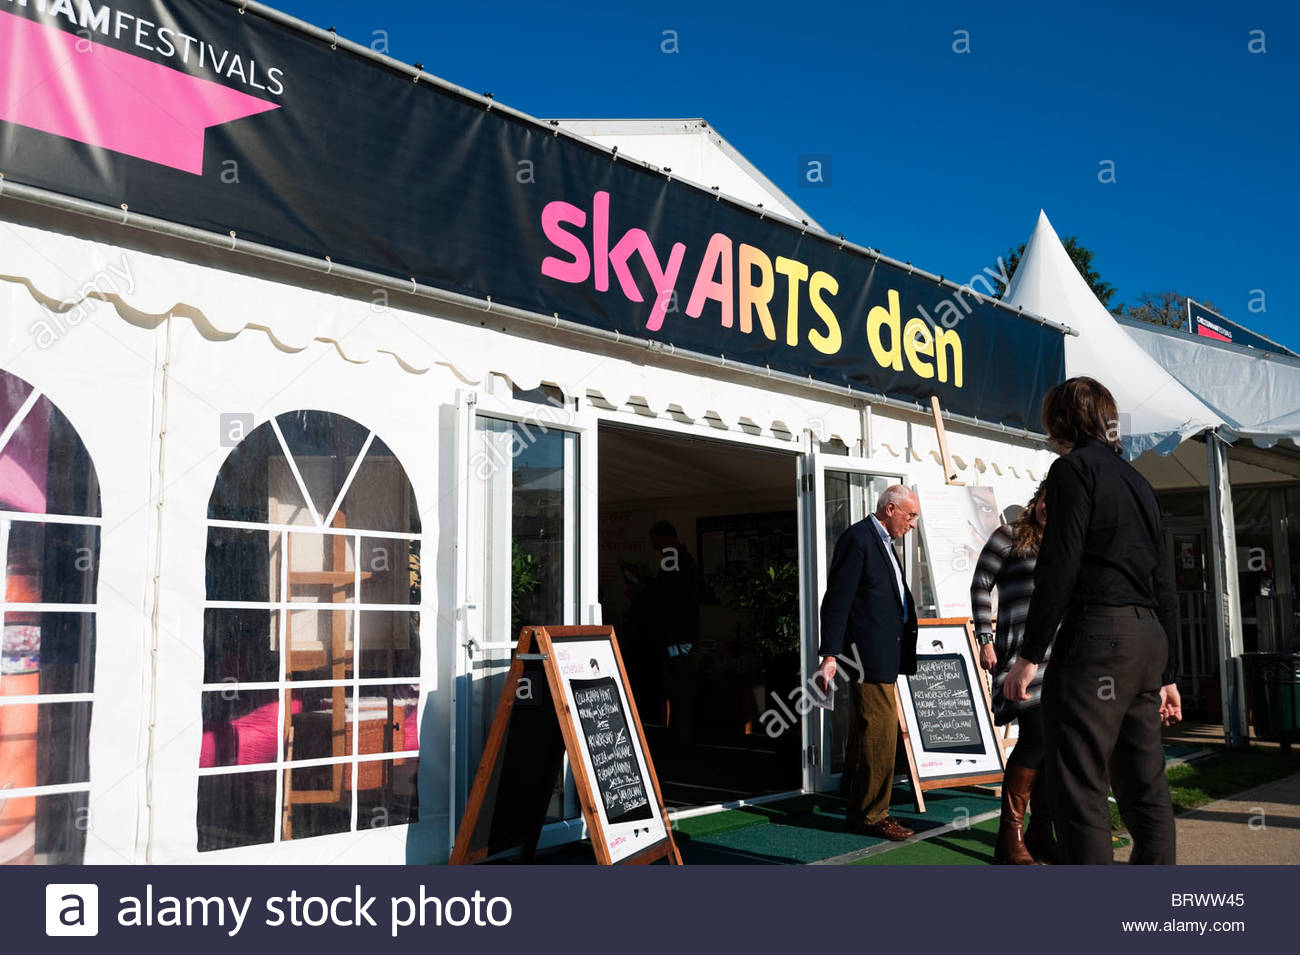 Cheltenham literary festival sky arts den, people outside, UK. - Stock Image